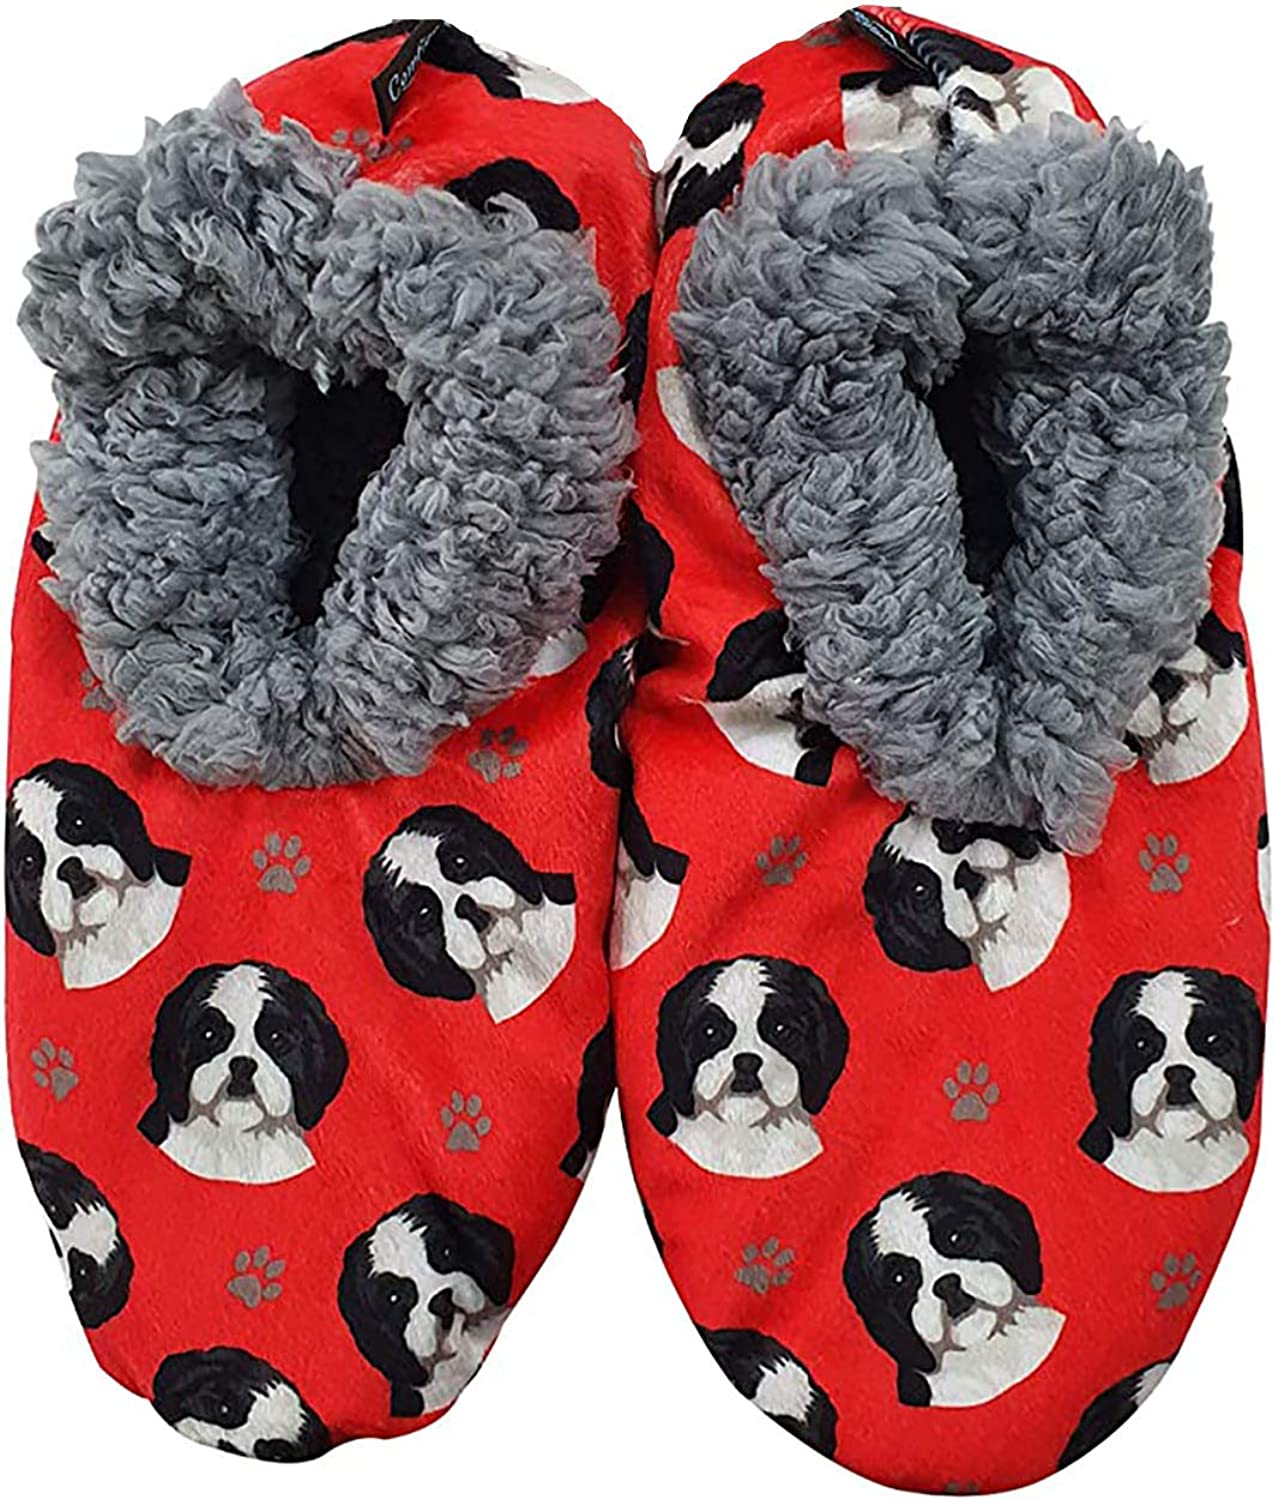 Shih Tzu Super Soft Women's Slippers - One Size Fits Most - Cozy House Slippers - Non Skid Bottom - perfect for Shih Tzu gifts